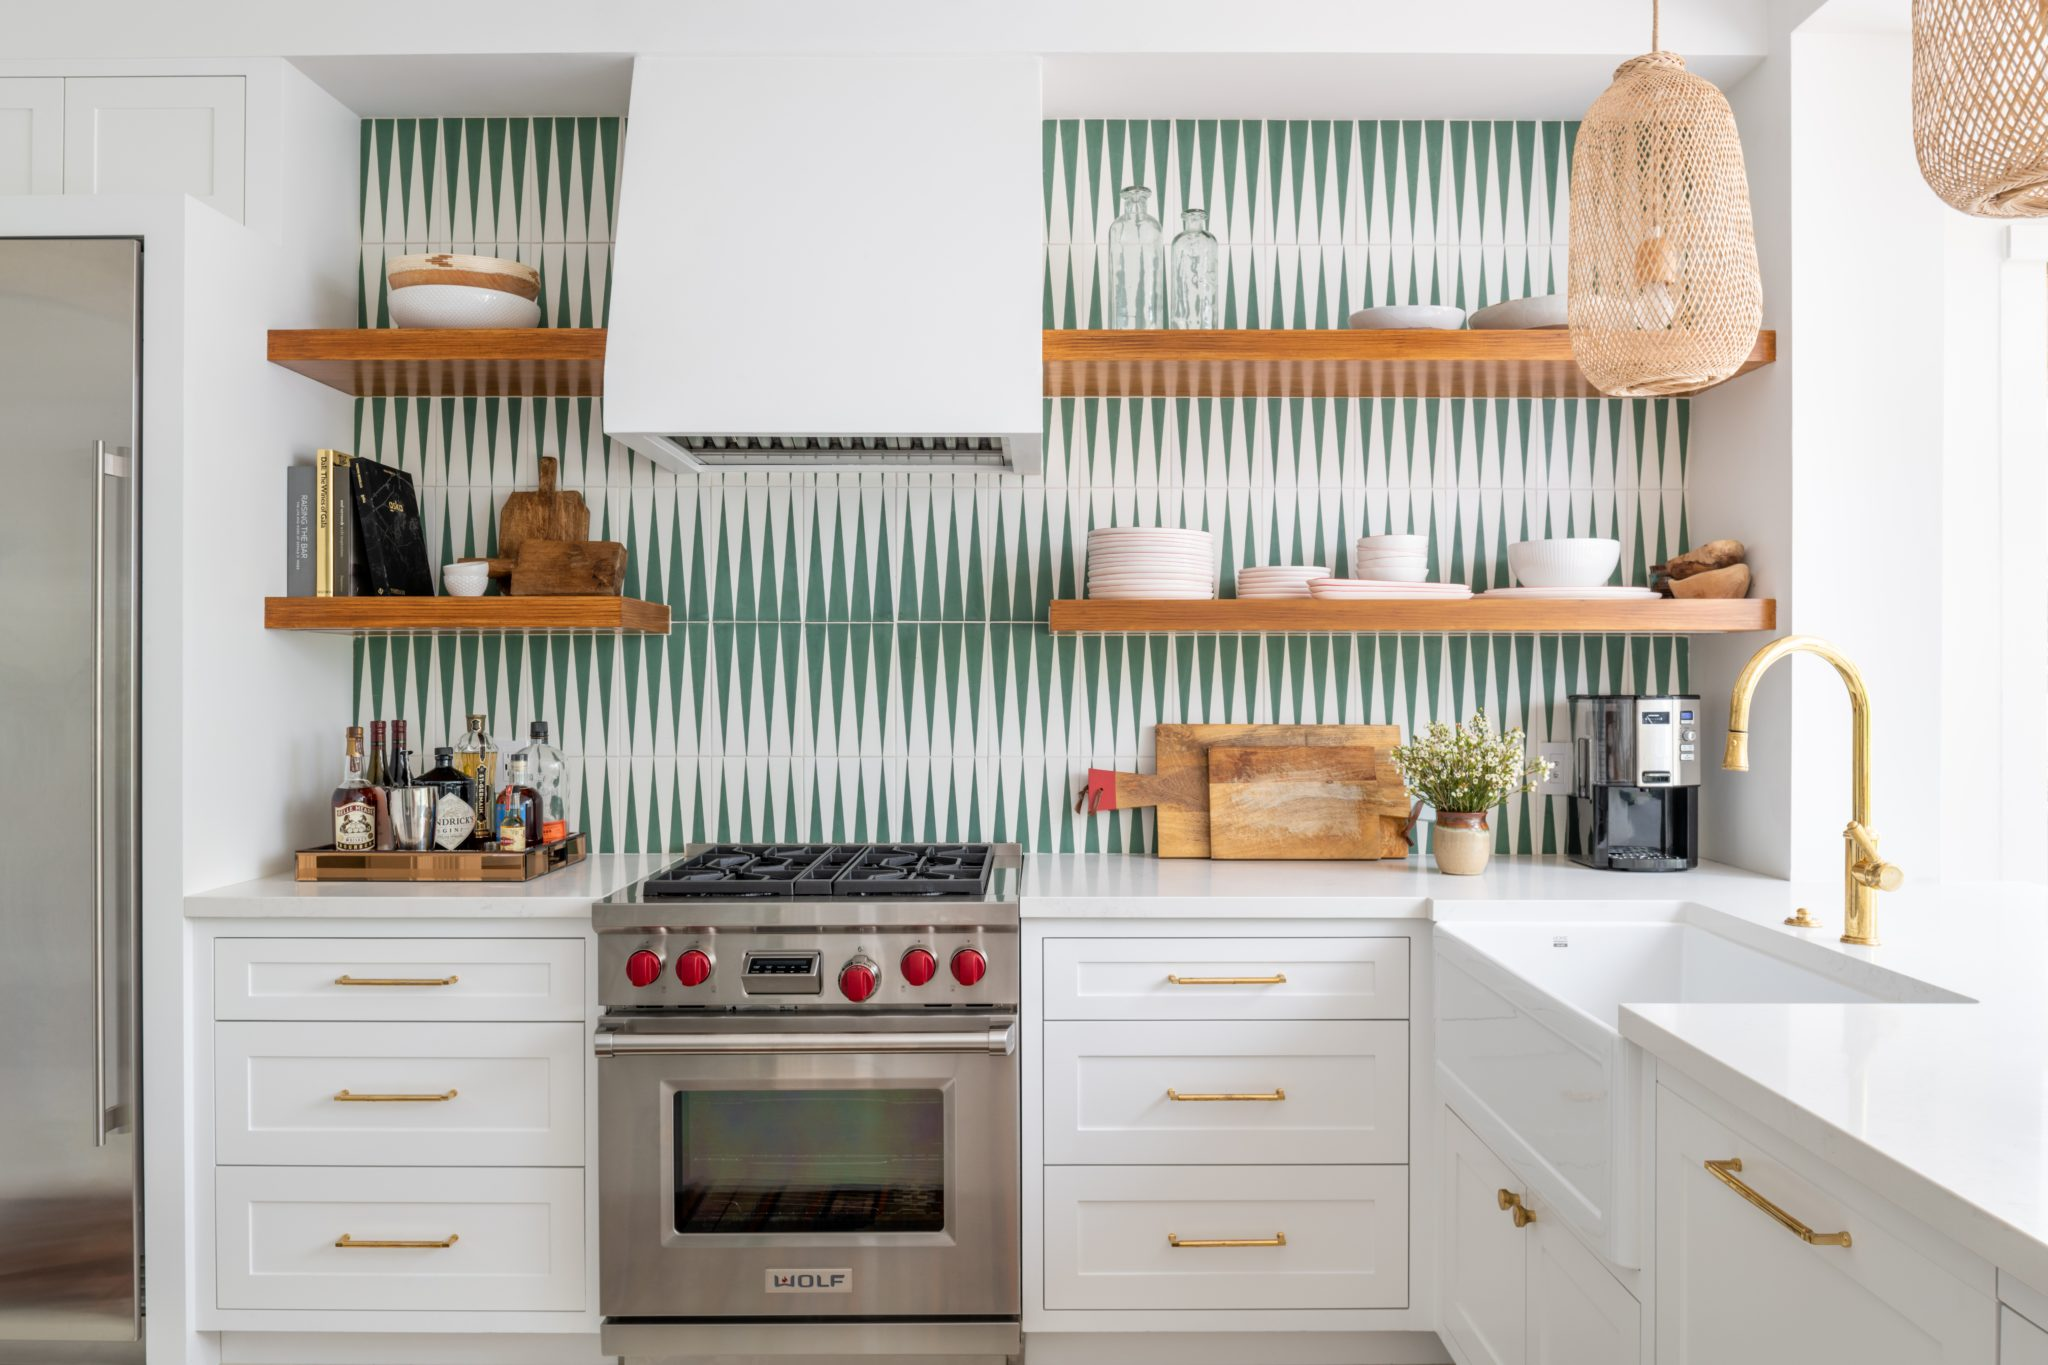 A Bright Kitchen with Open Shelving and Green Patterned Tiles by Maureen Stevens Design